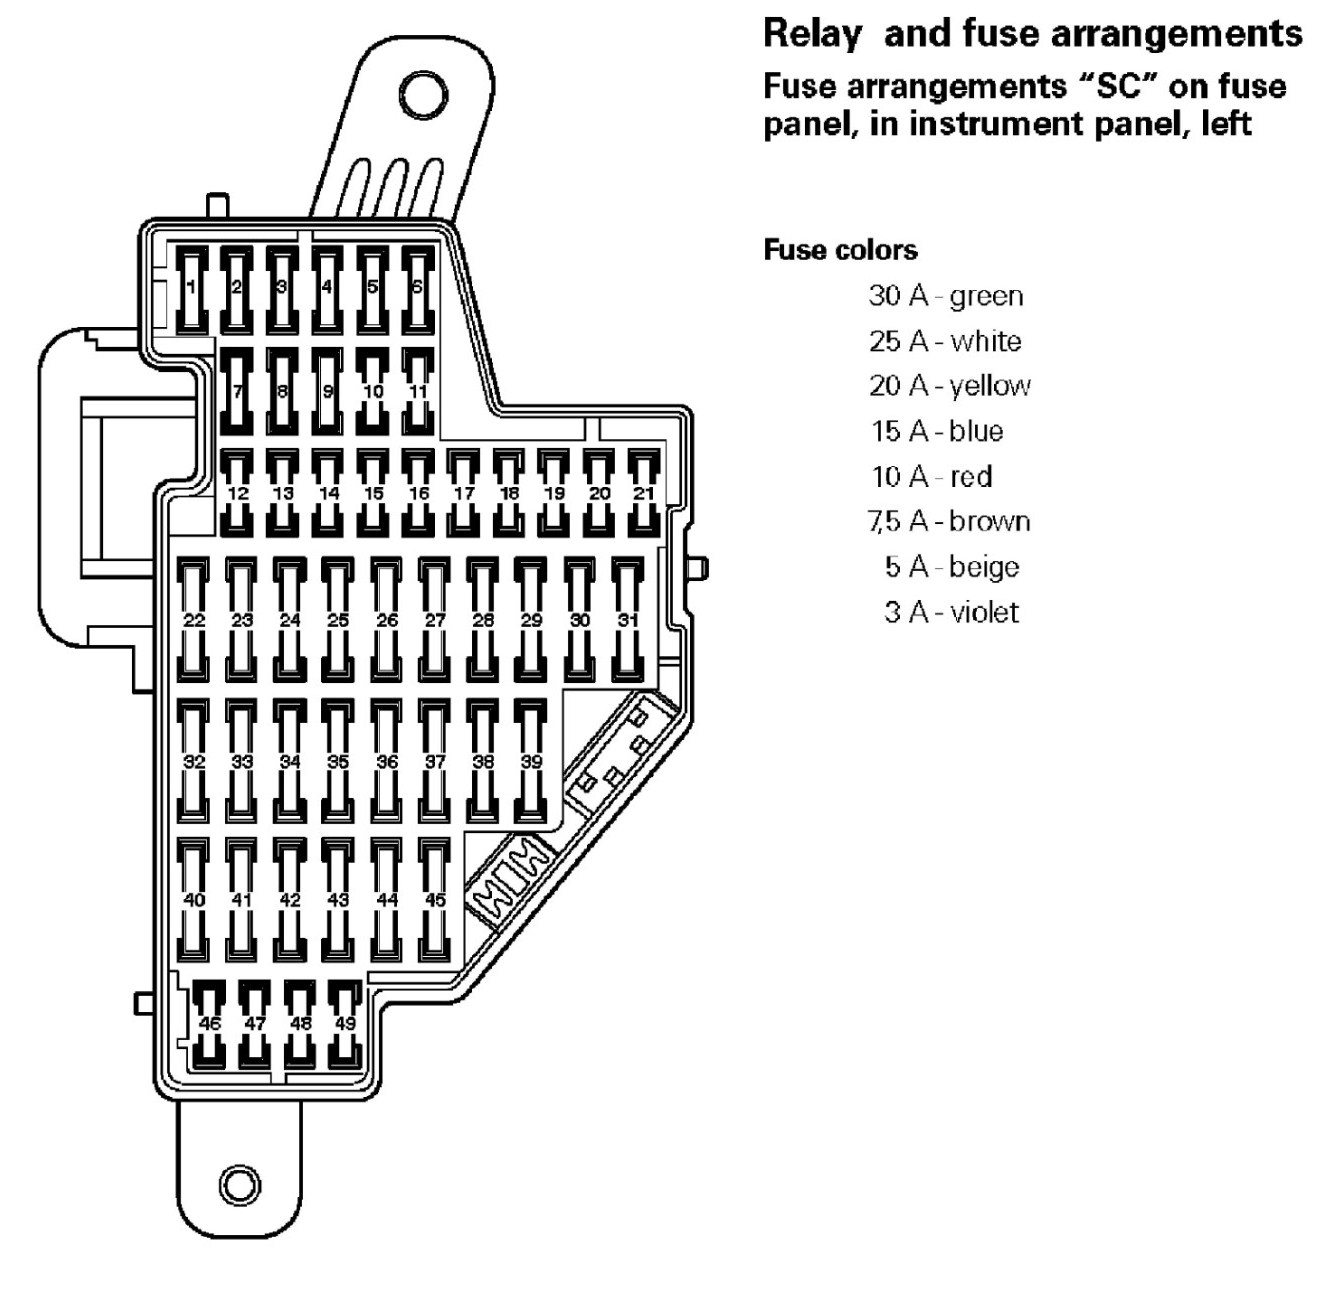 hight resolution of 2012 jetta fuse box location wiring diagram schematics 2014 vw jetta fuse box 09 vw jetta fuse box